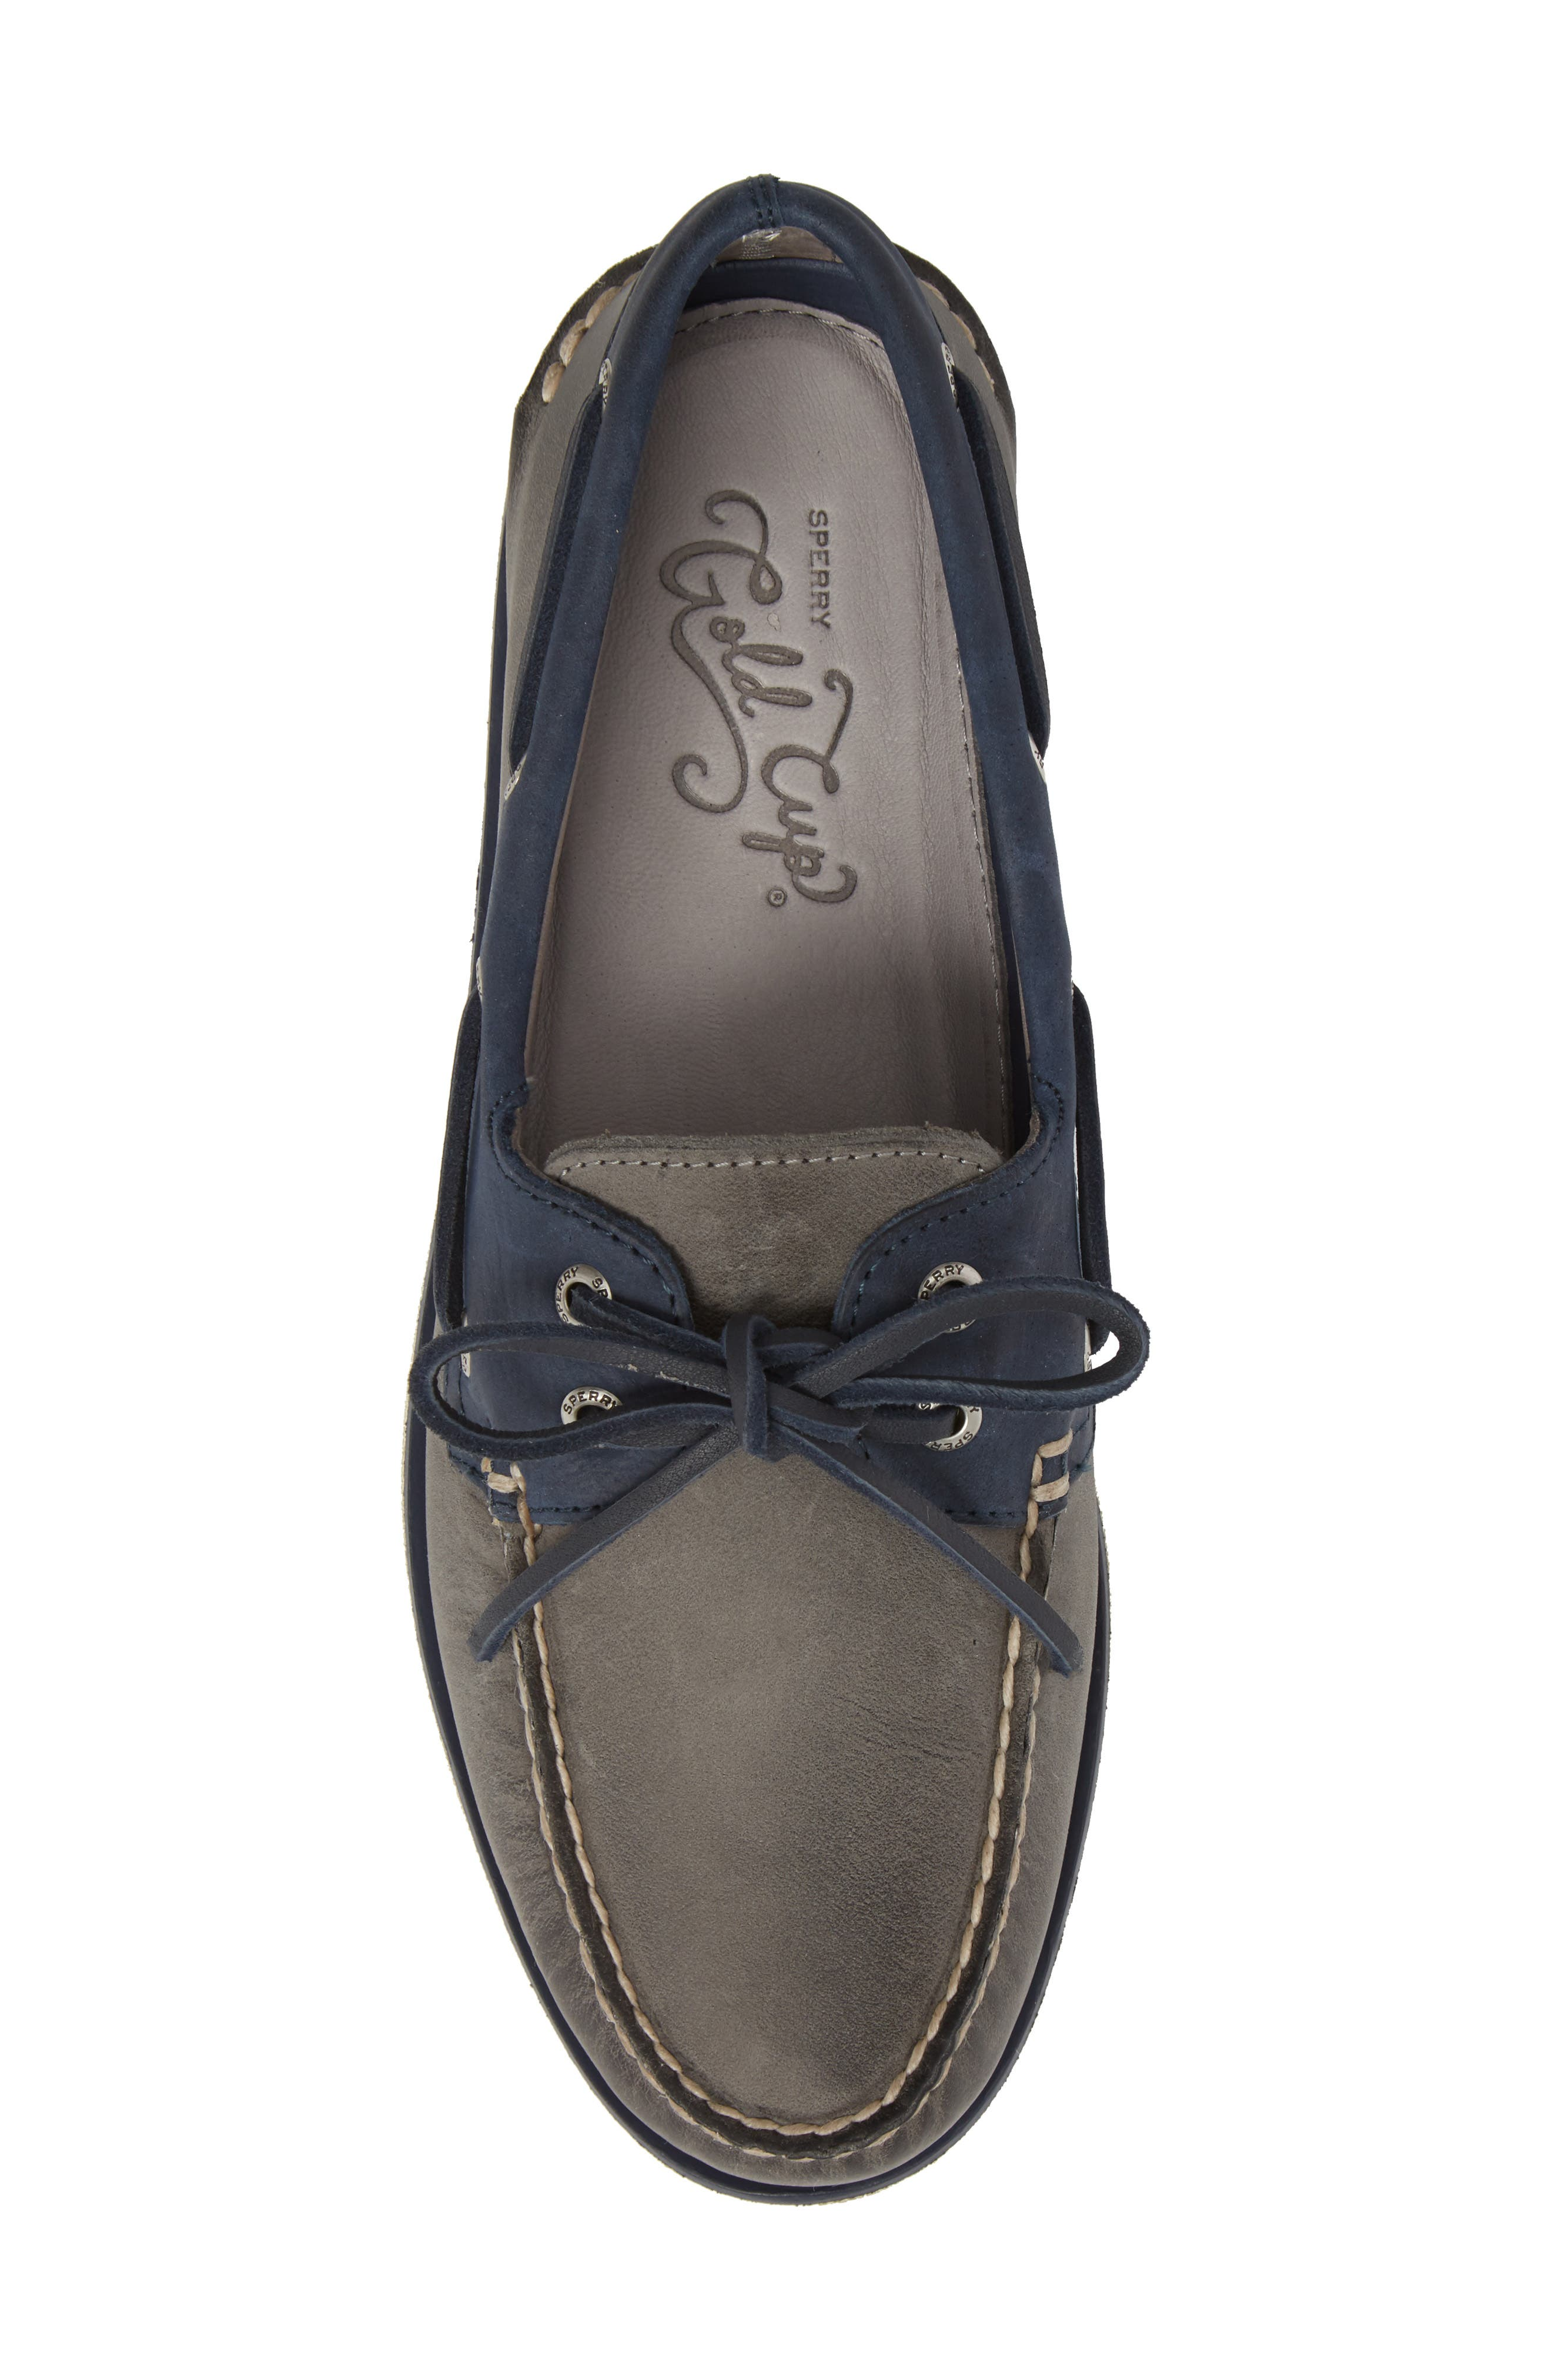 SPERRY, Gold Cup Authentic Original Boat Shoe, Alternate thumbnail 5, color, GREY/ NAVY LEATHER